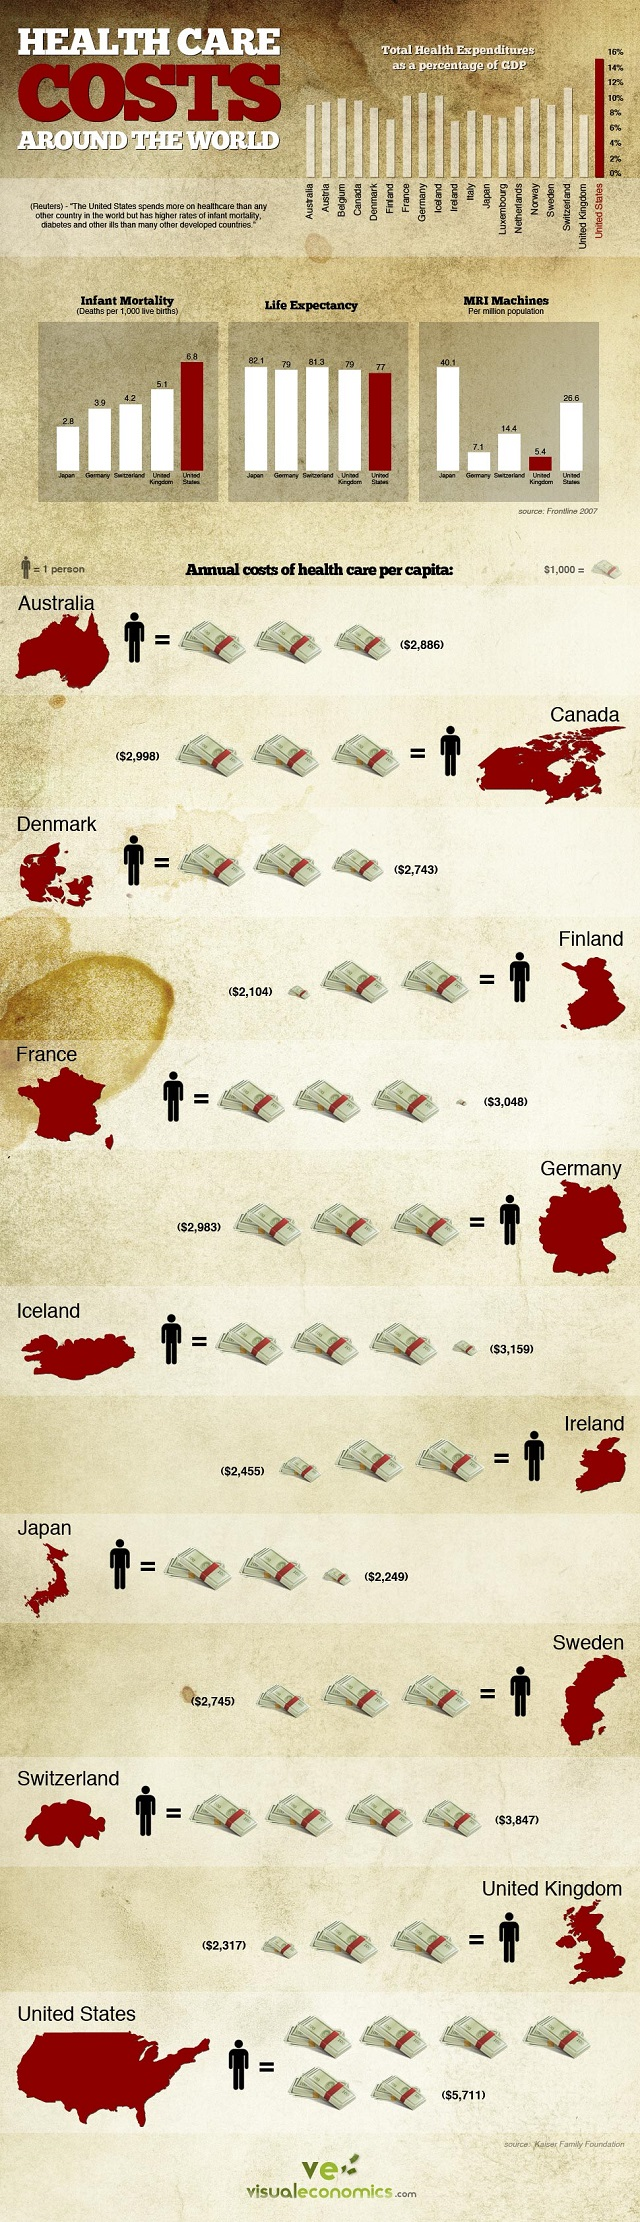 Infographic_Health Care Costs around the World